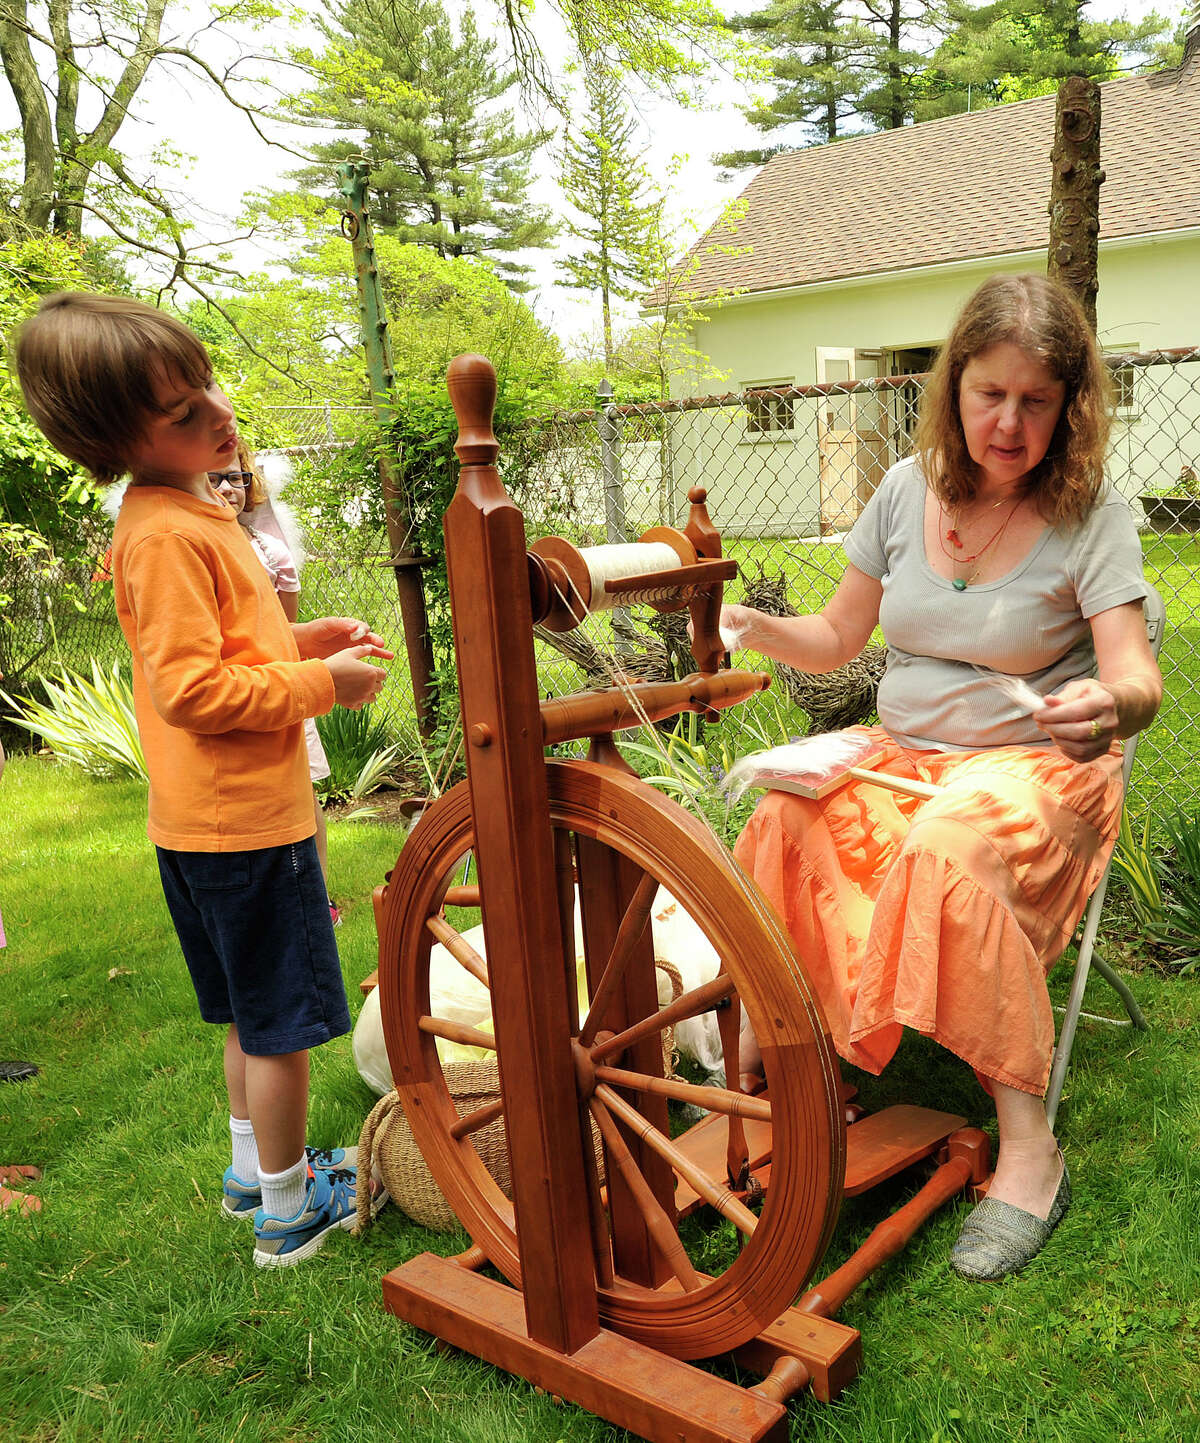 Ace Grossman watches Gale Organist spin wool into yarn during the Greenwich Historical Society's Spring Fling at French Farm in Greenwich, Conn., on Sunday, May 17, 2015.